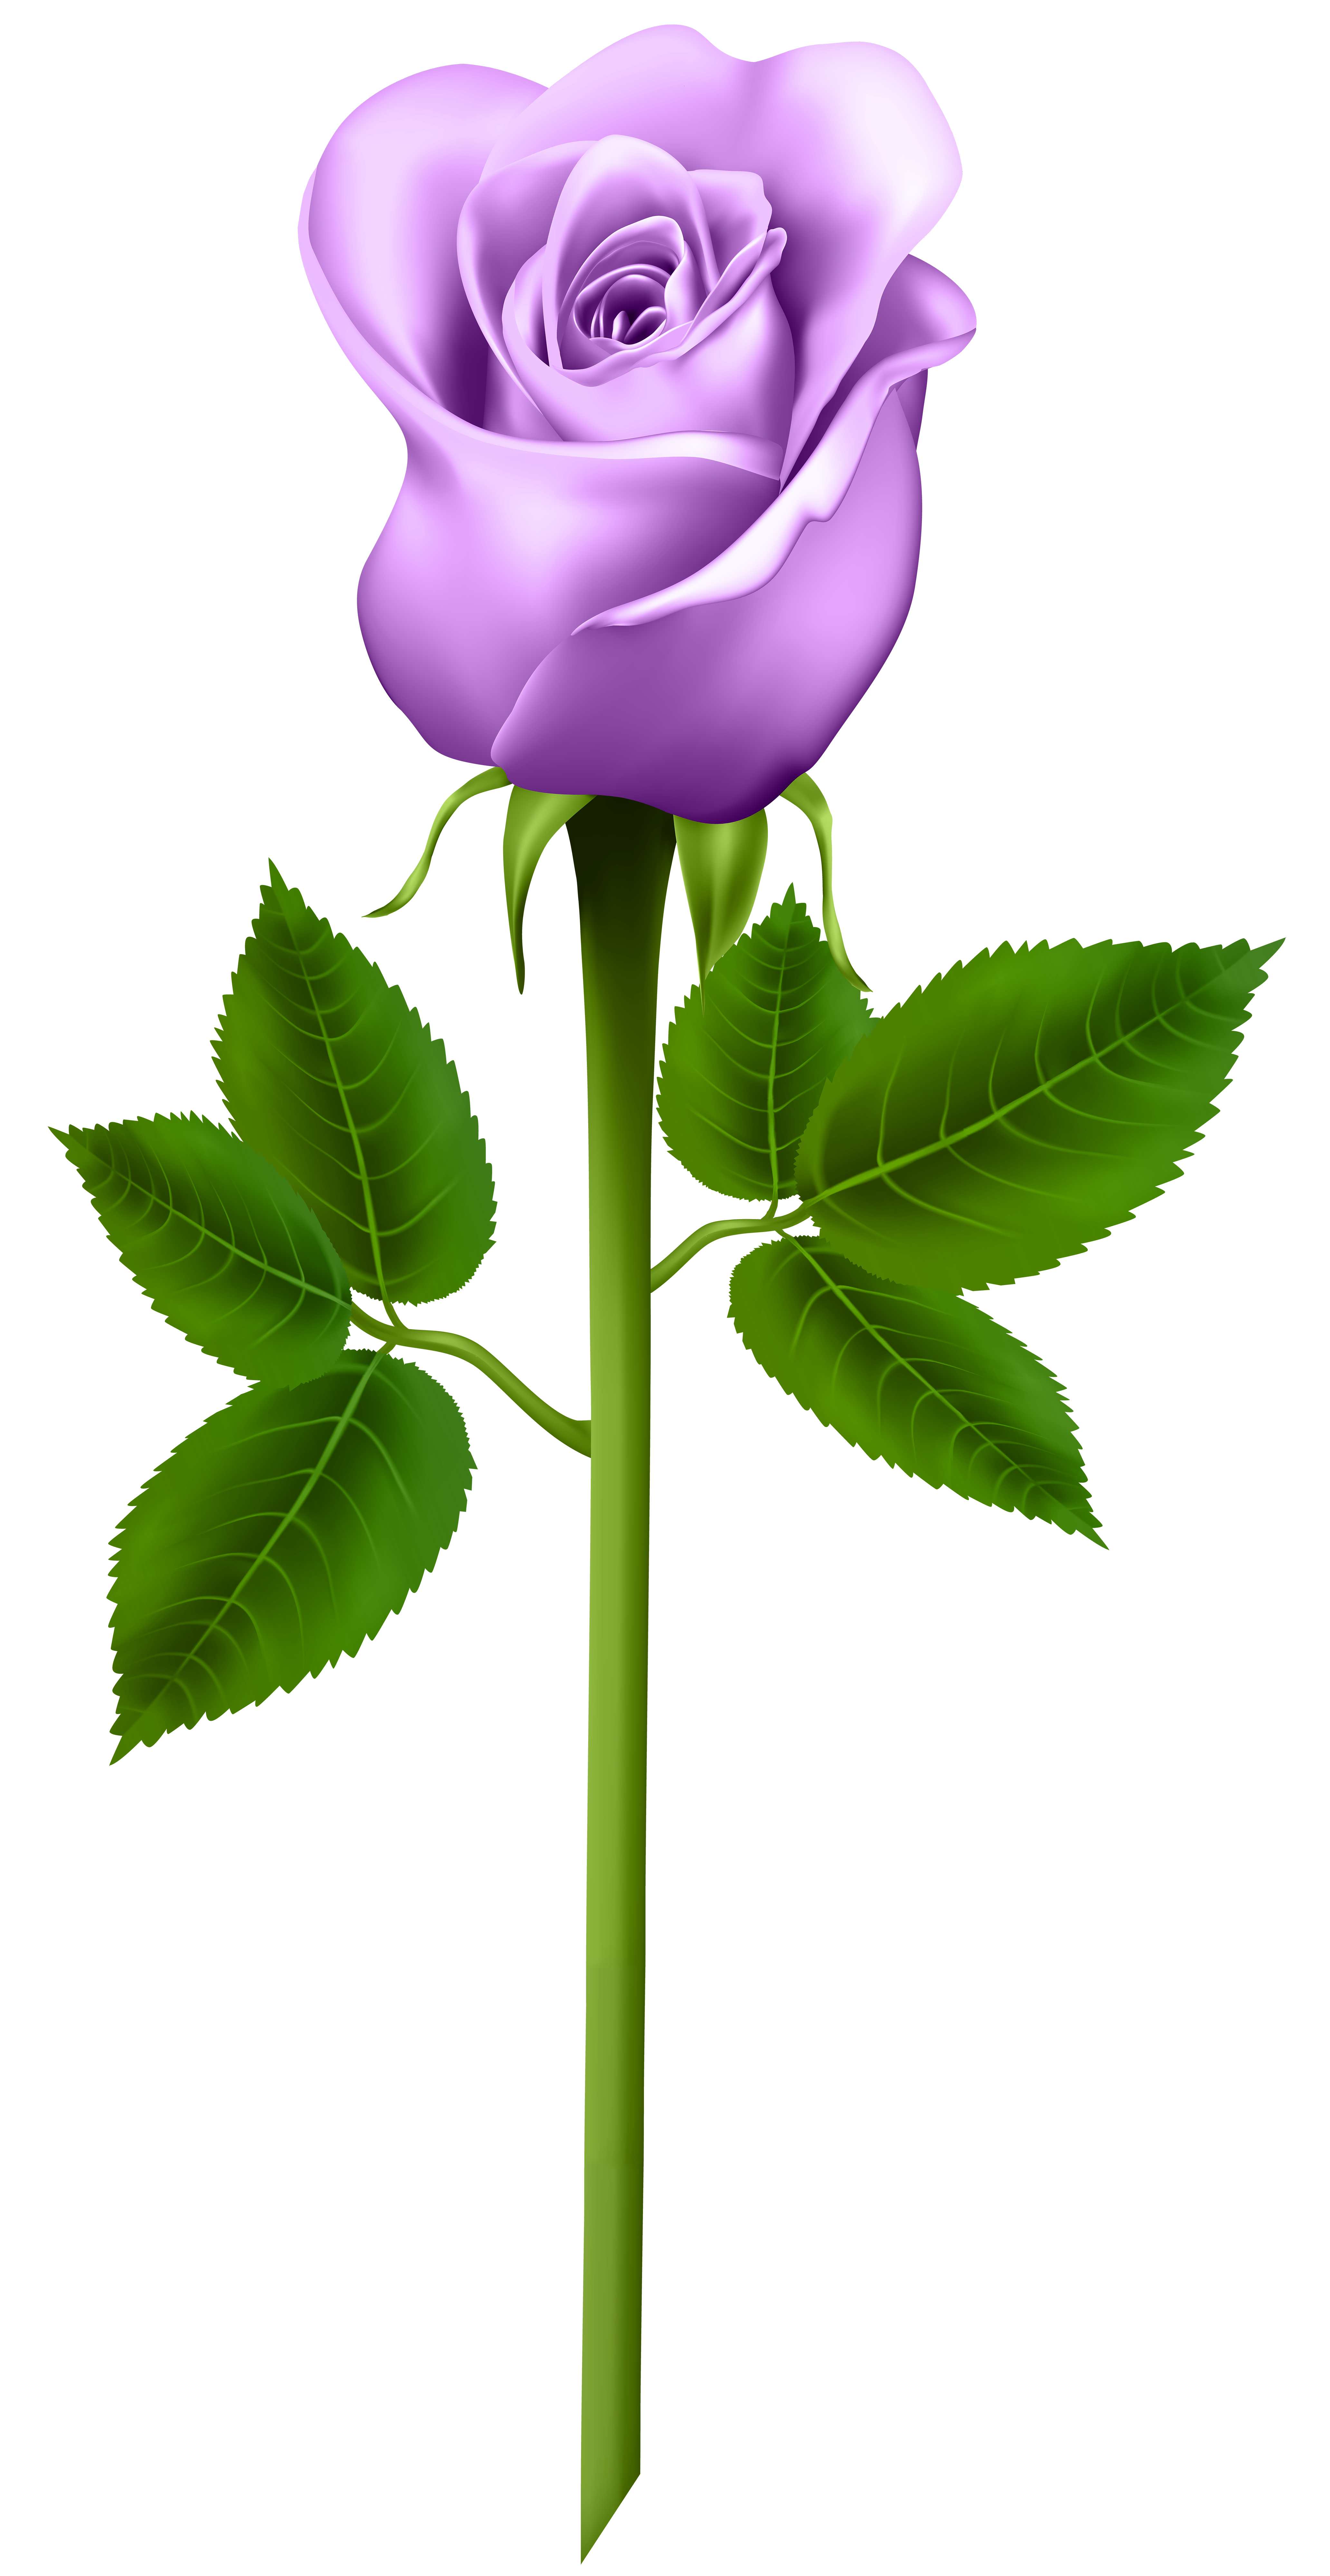 Purple Roses Background Images: Pin By Bill Nguyen On Free Pictures